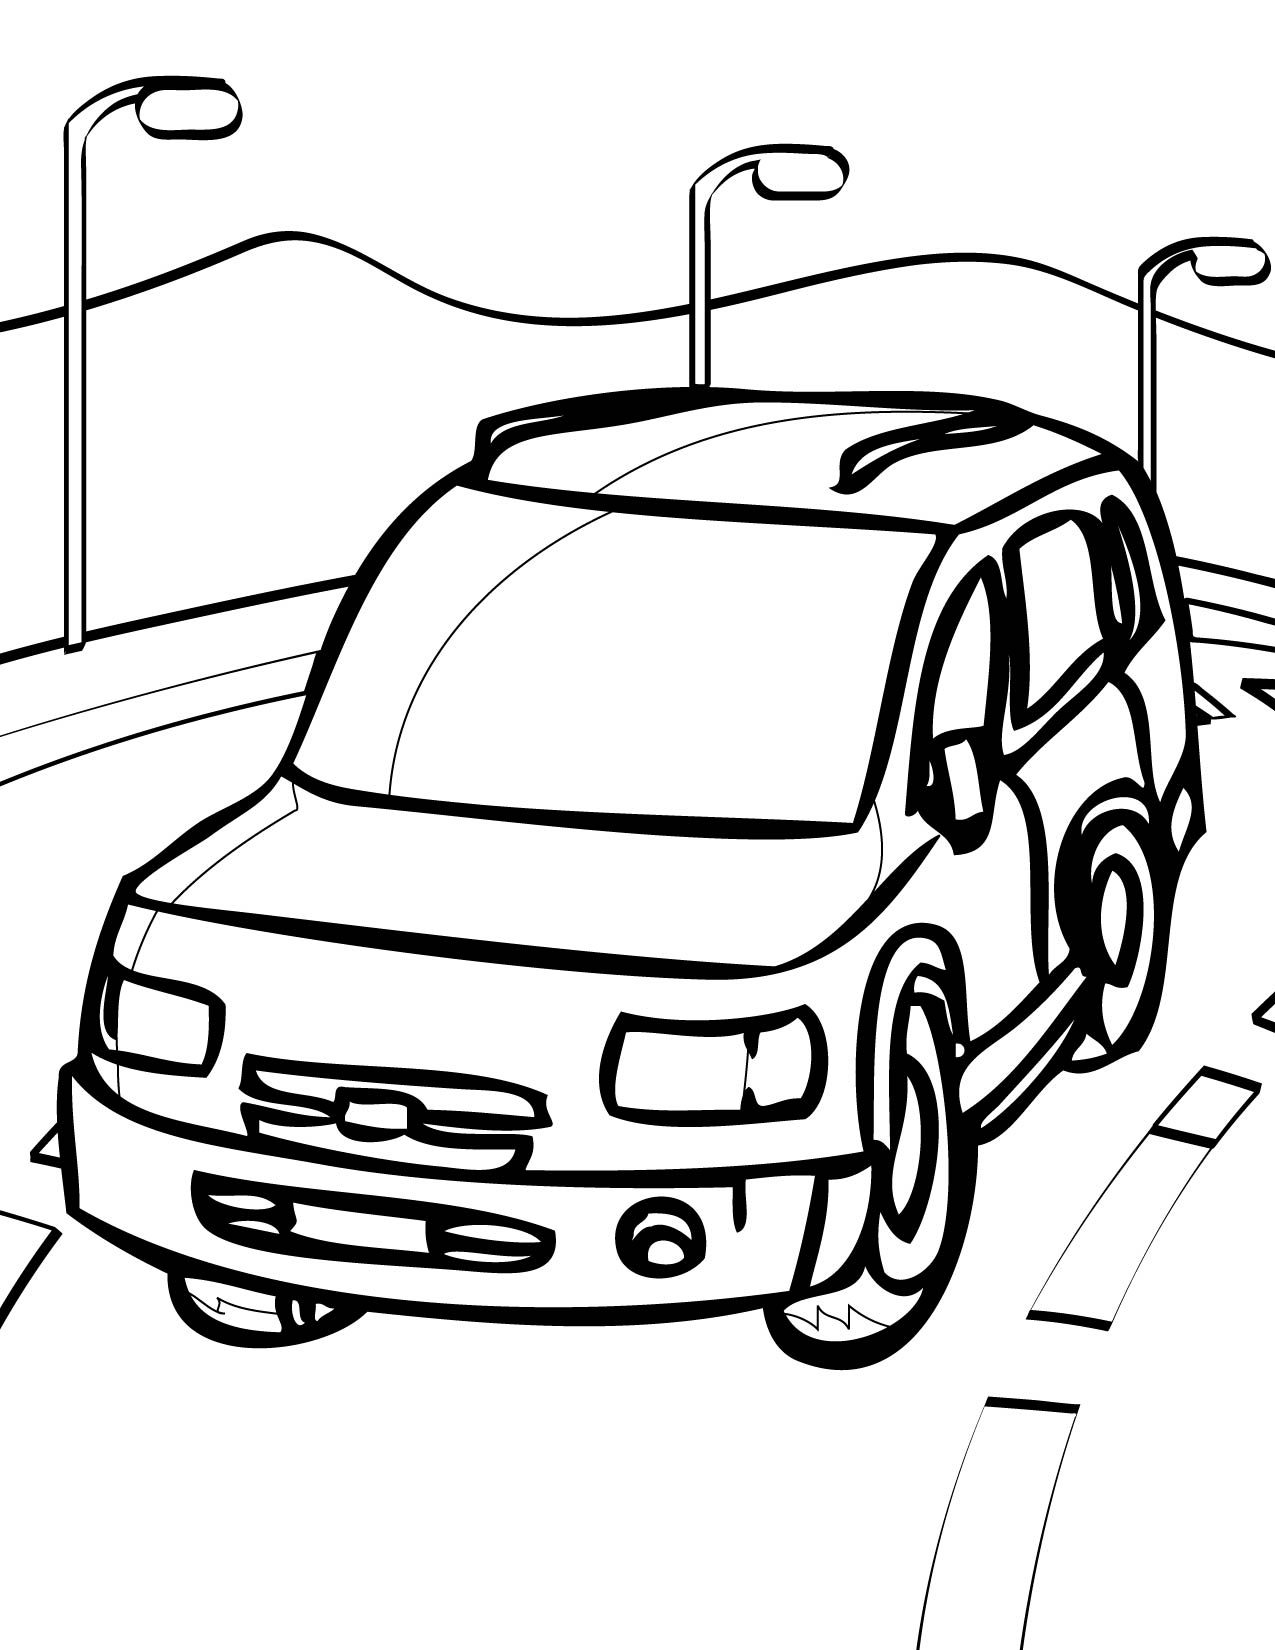 primary games coloring pages - photo#26